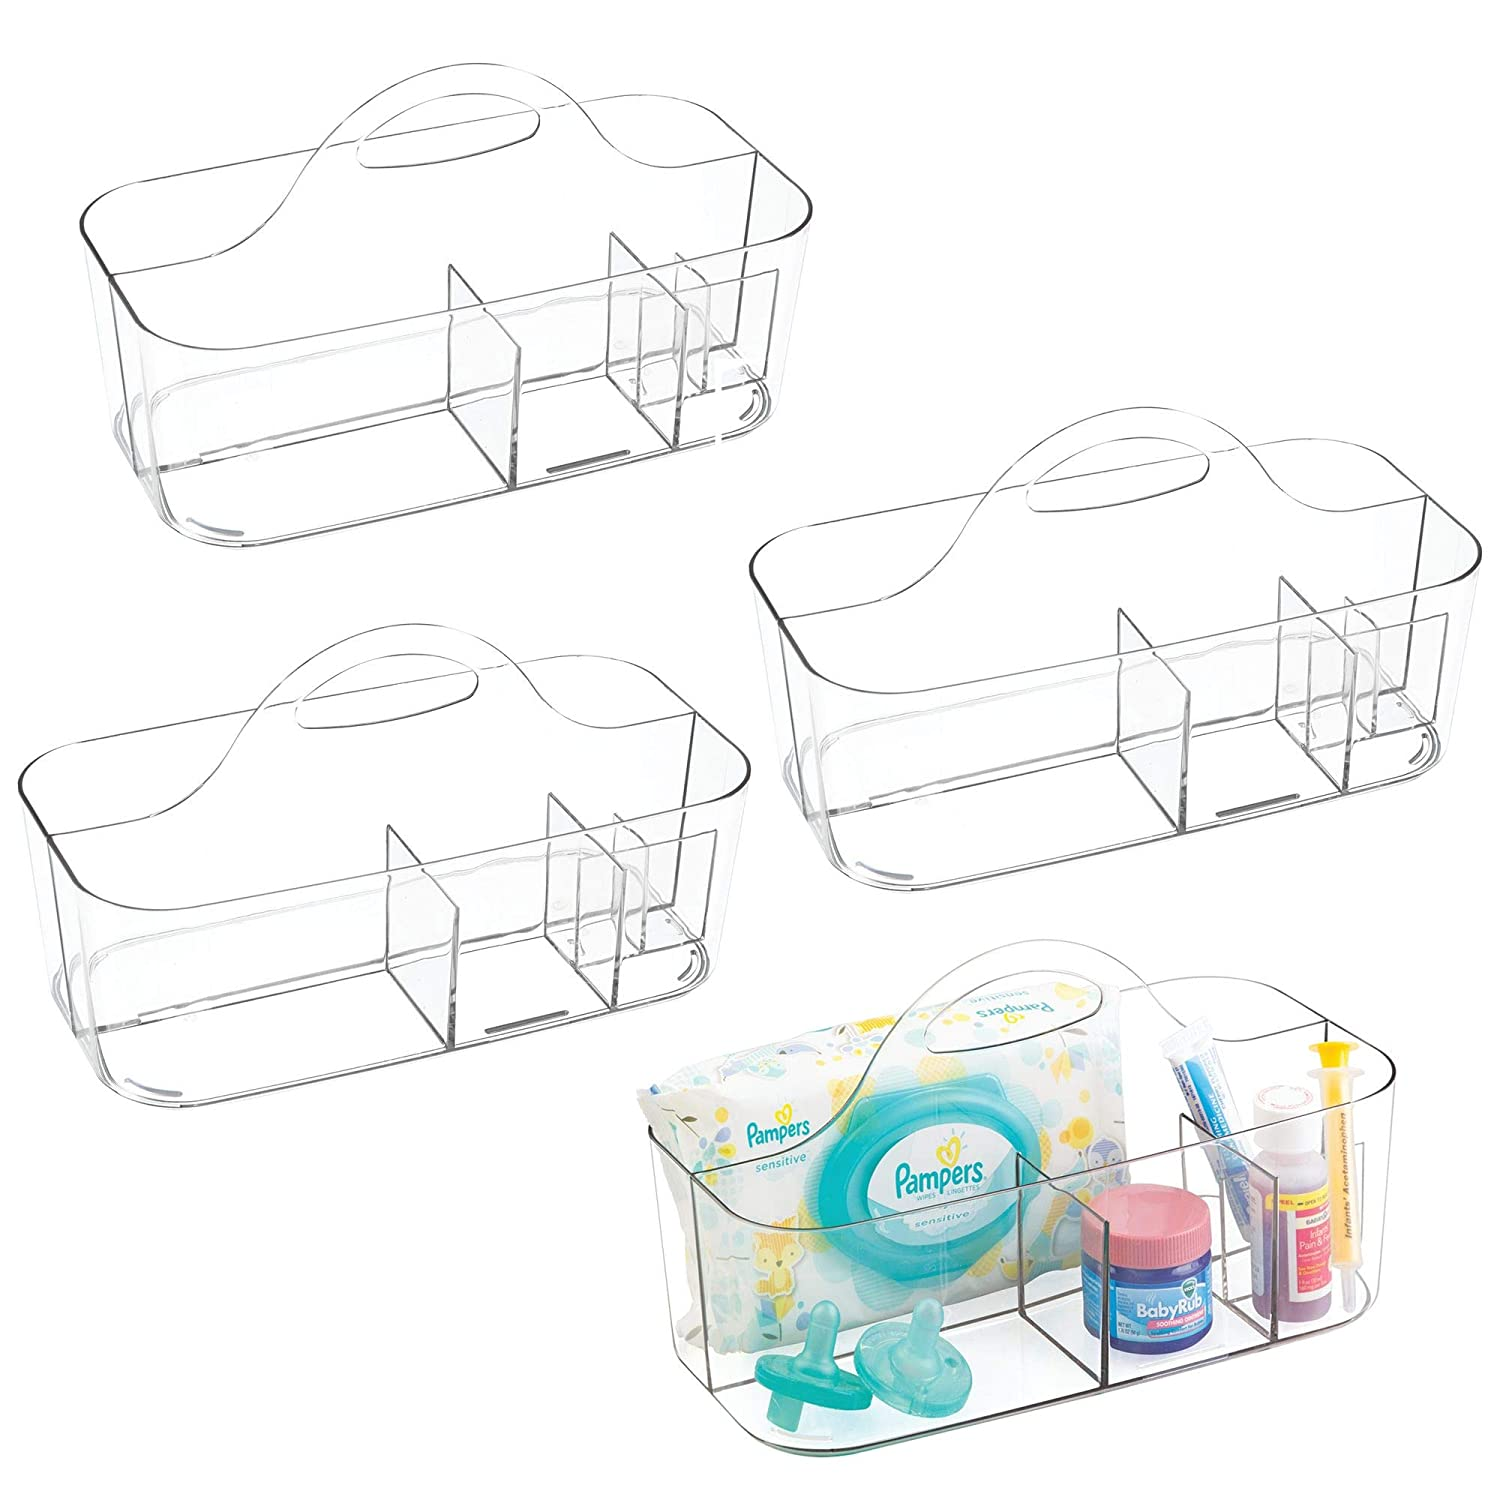 mDesign Plastic Portable Nursery Storage Organizer Caddy Tote - Divided Basket Bin with Handle - Holds Bottles, Spoons, Bibs, Pacifiers, Diapers, Wipes, Baby Lotion - BPA Free - Large, 4 Pack - Clear